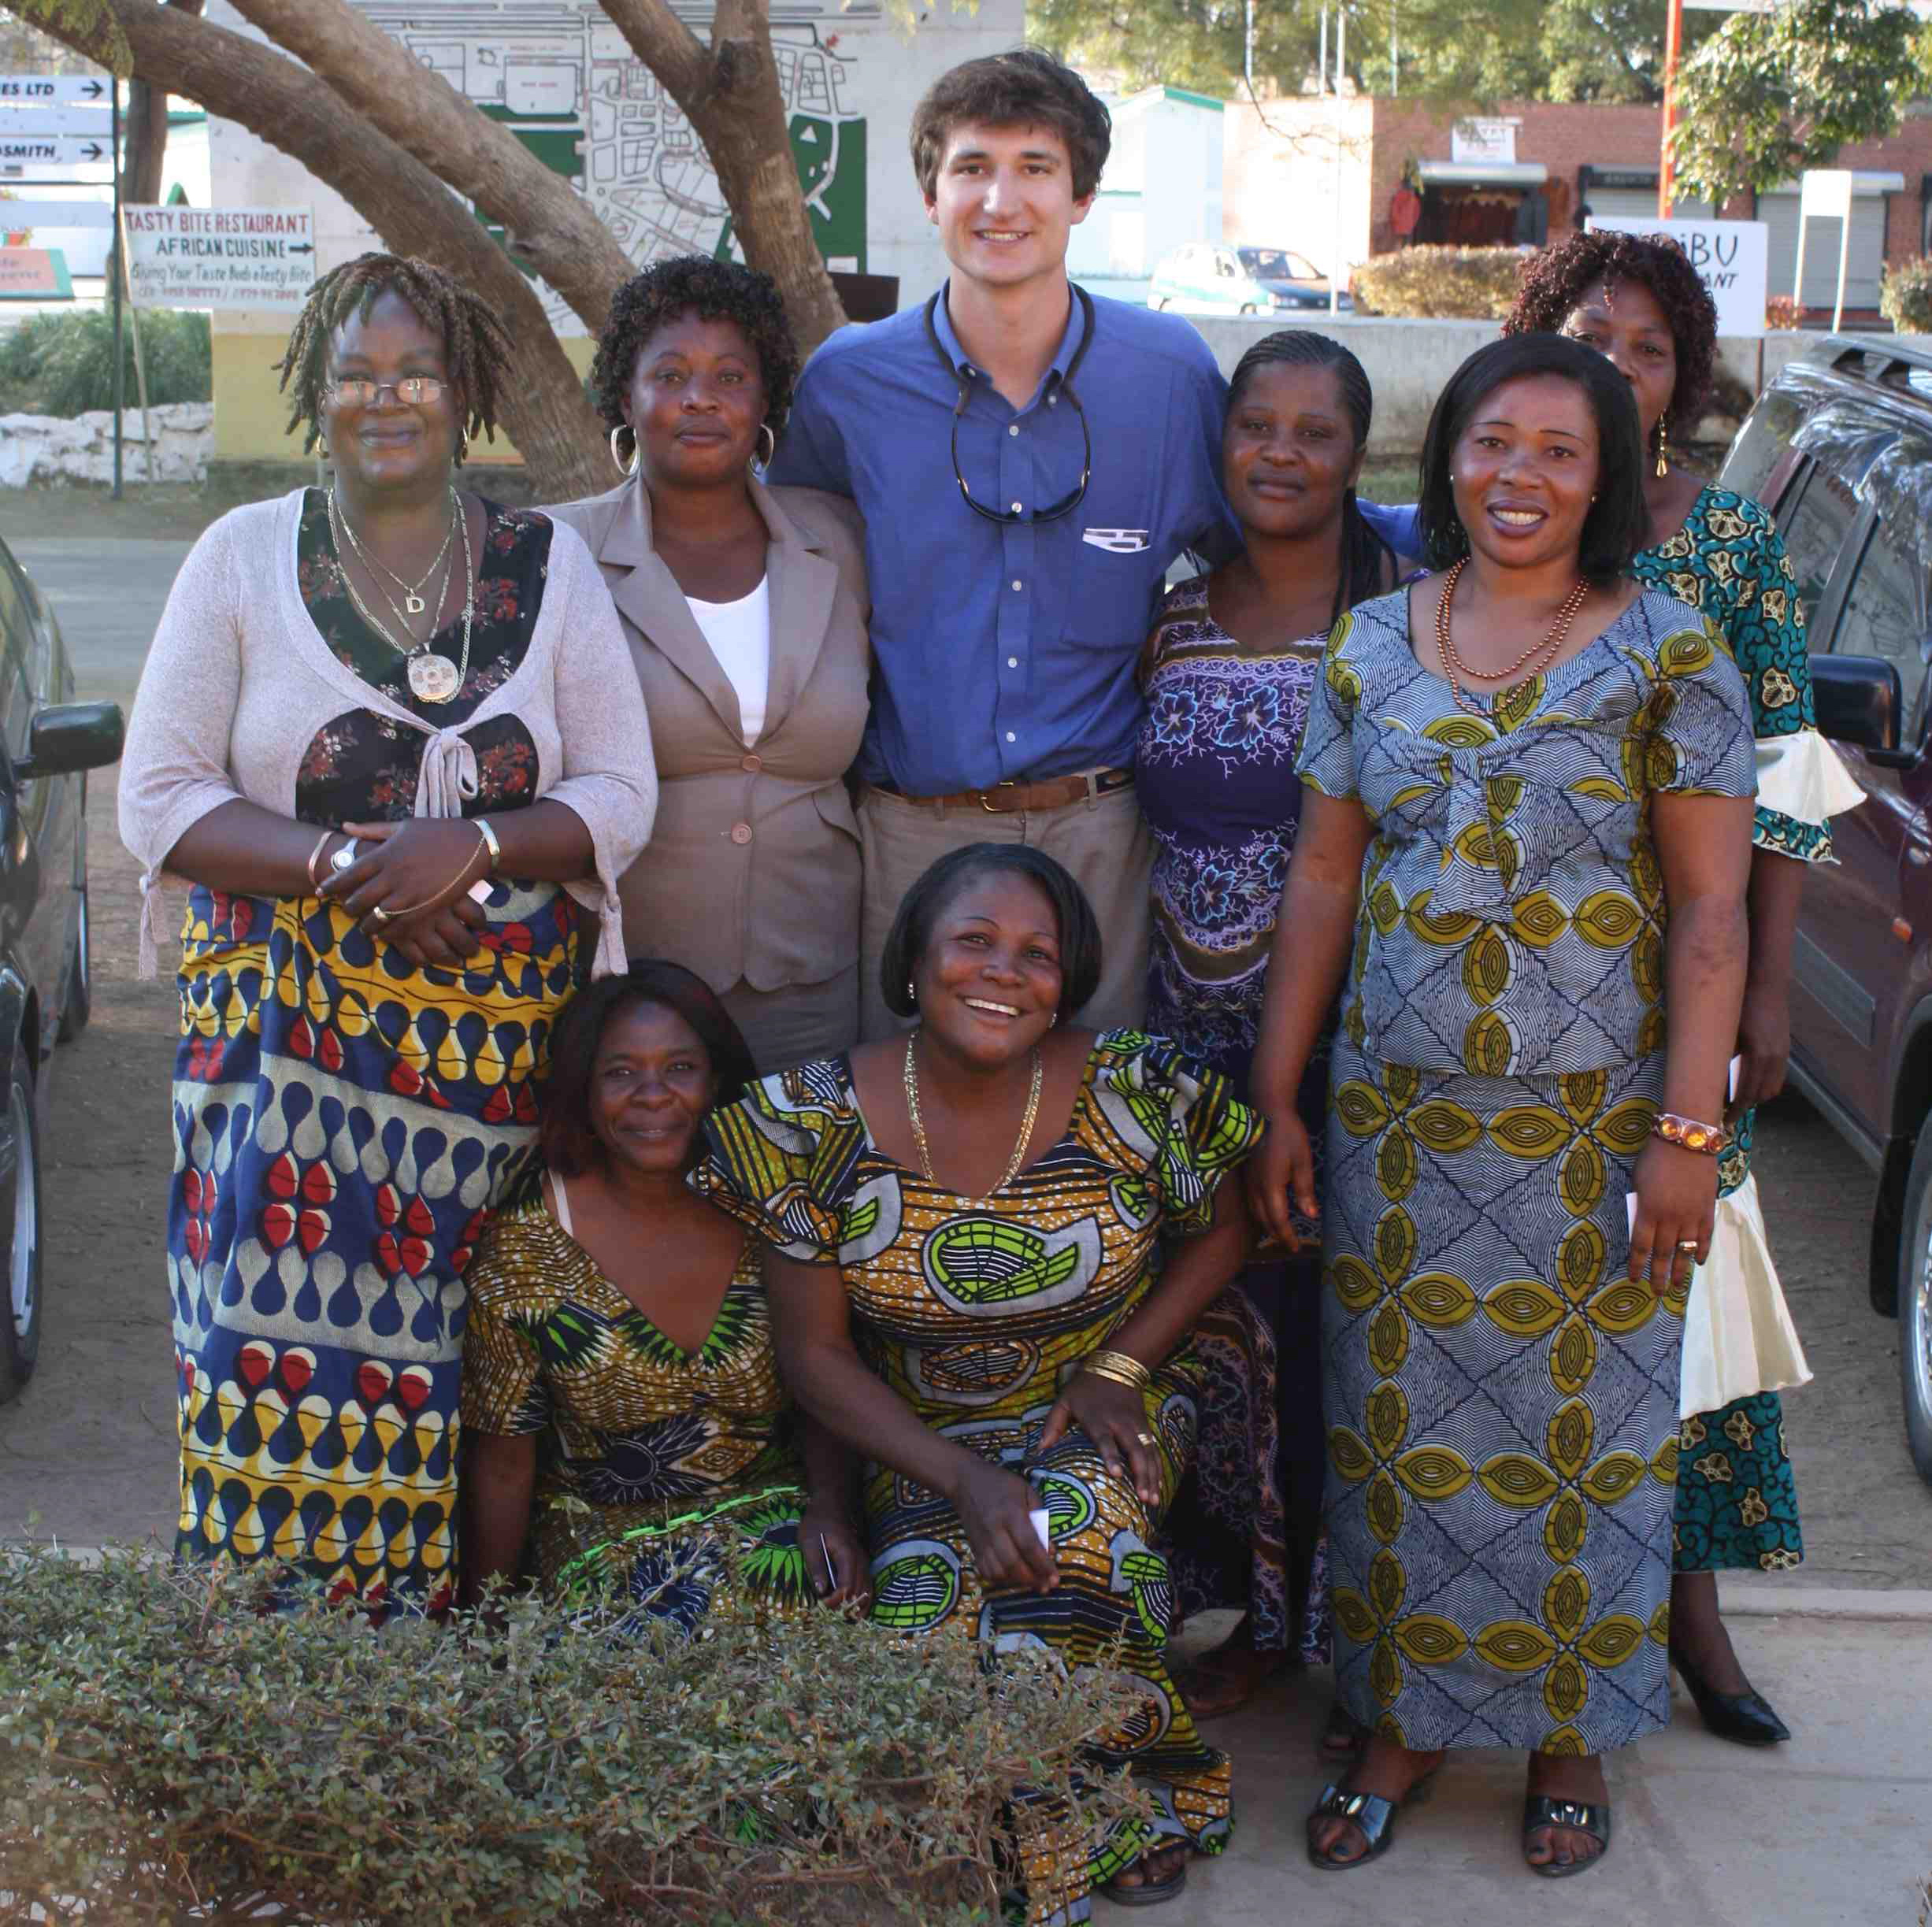 Kitchen Party Wyatt Smith A Blog Archive A Crashing A Kitchen Party In Zambia